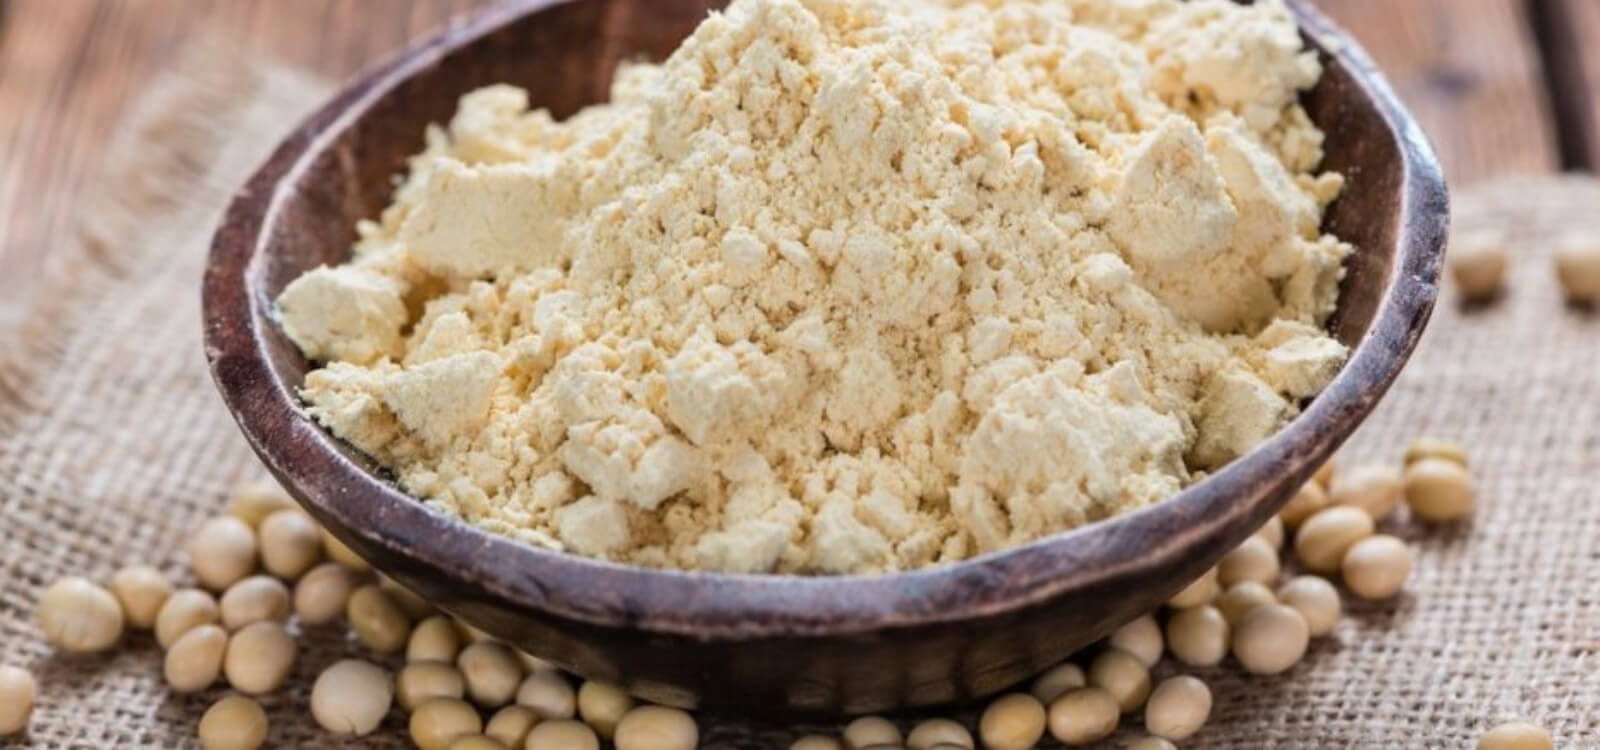 Can Soy Protein Isolate Decrease Your Testosterone?